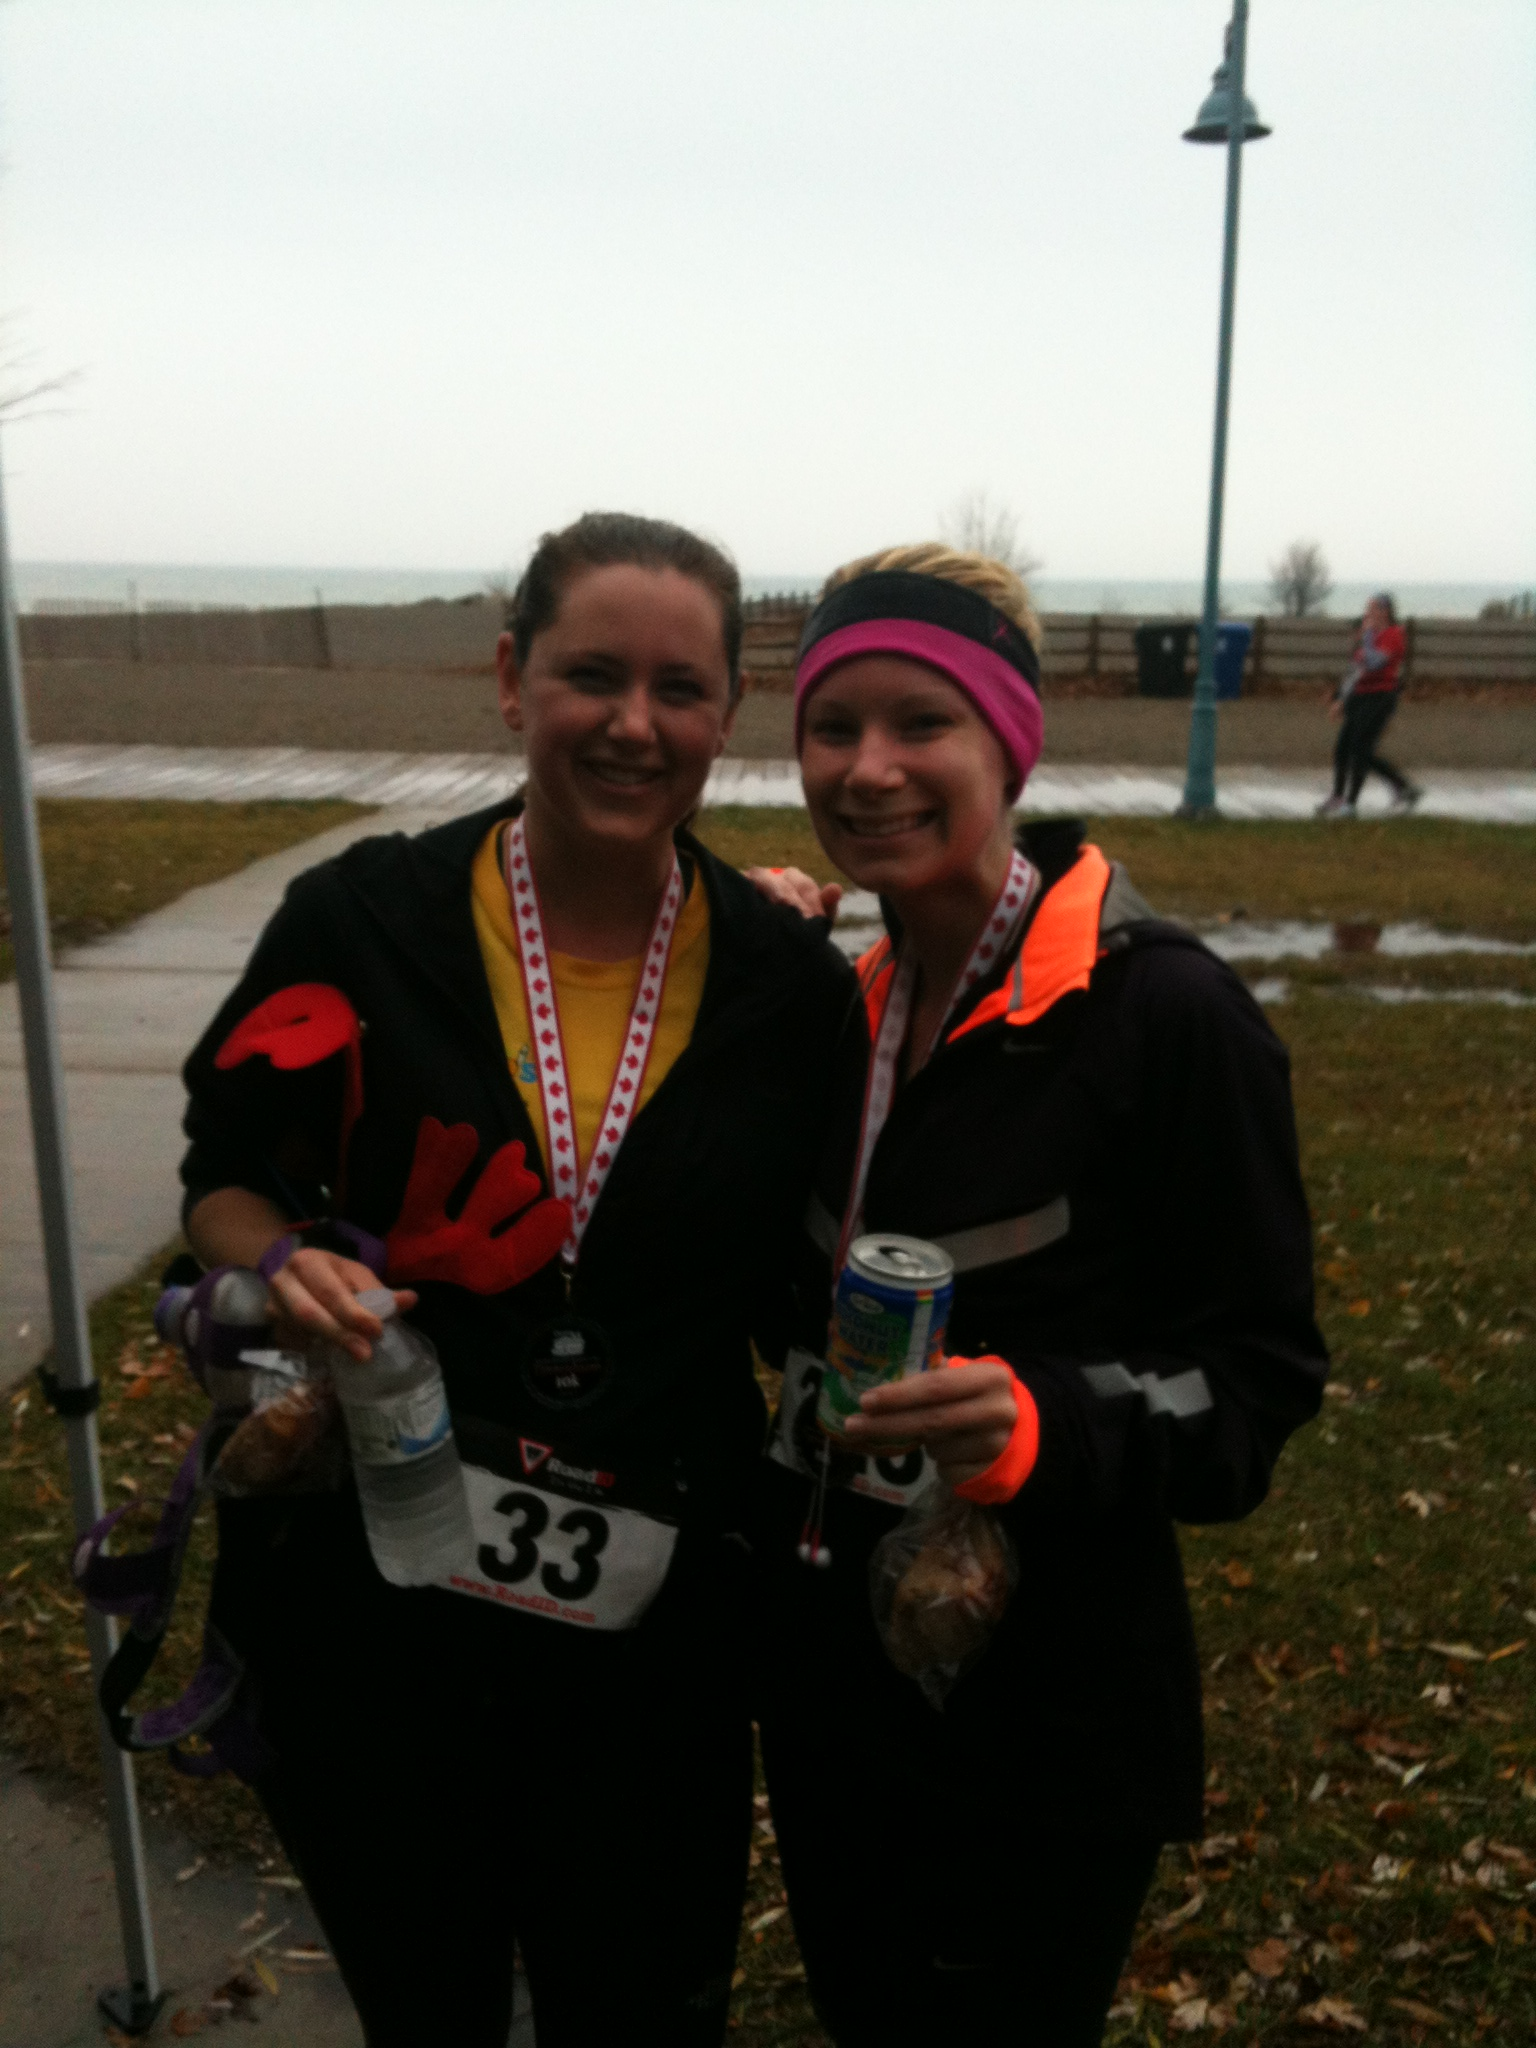 Miranda and Kennedy at Tannenbaum 10km 2012